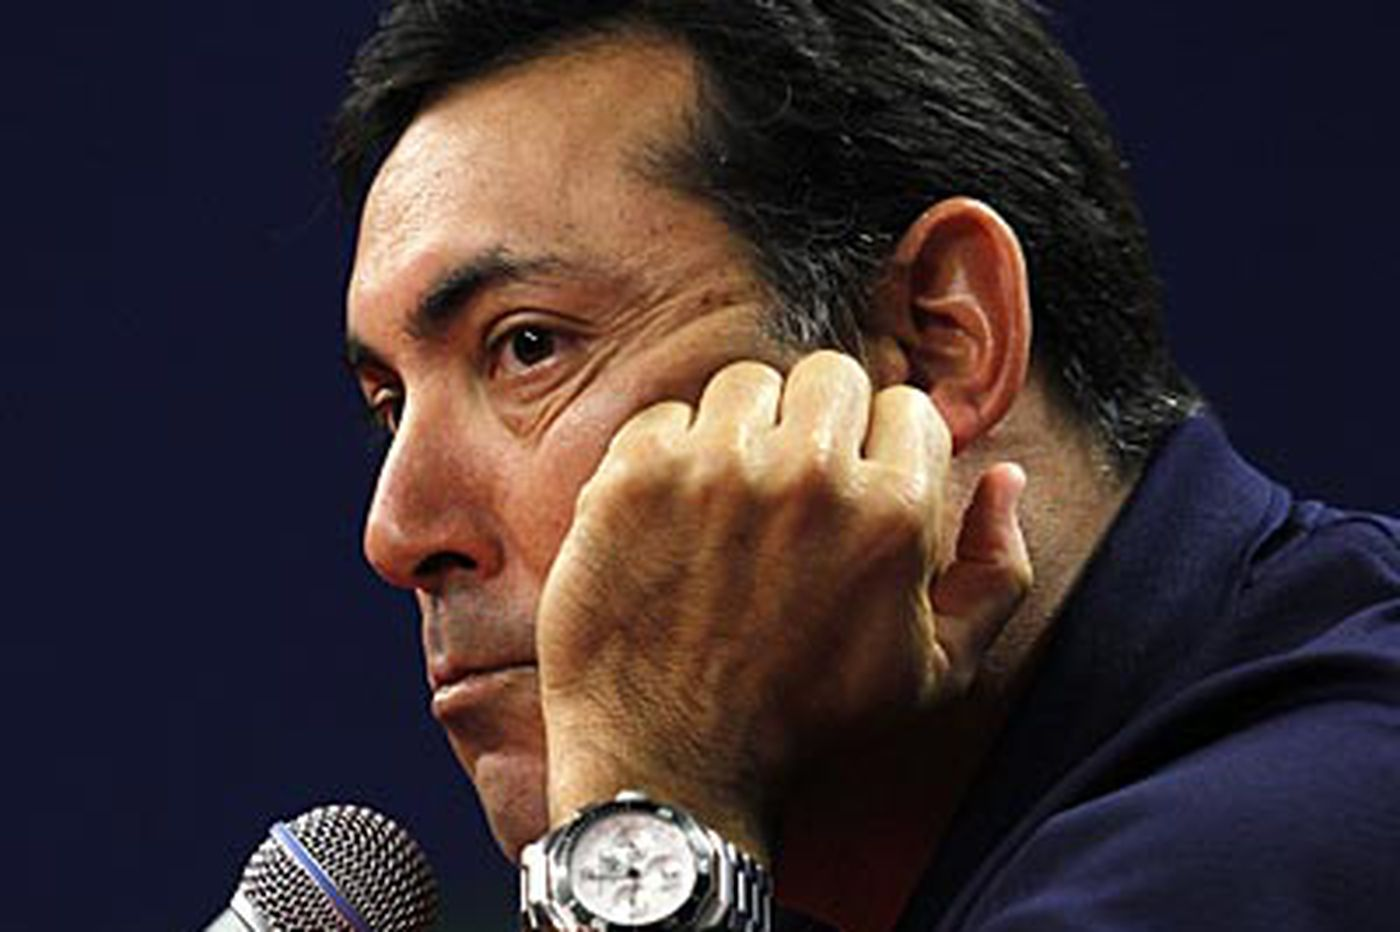 Phillies GM Amaro ponders roster changes